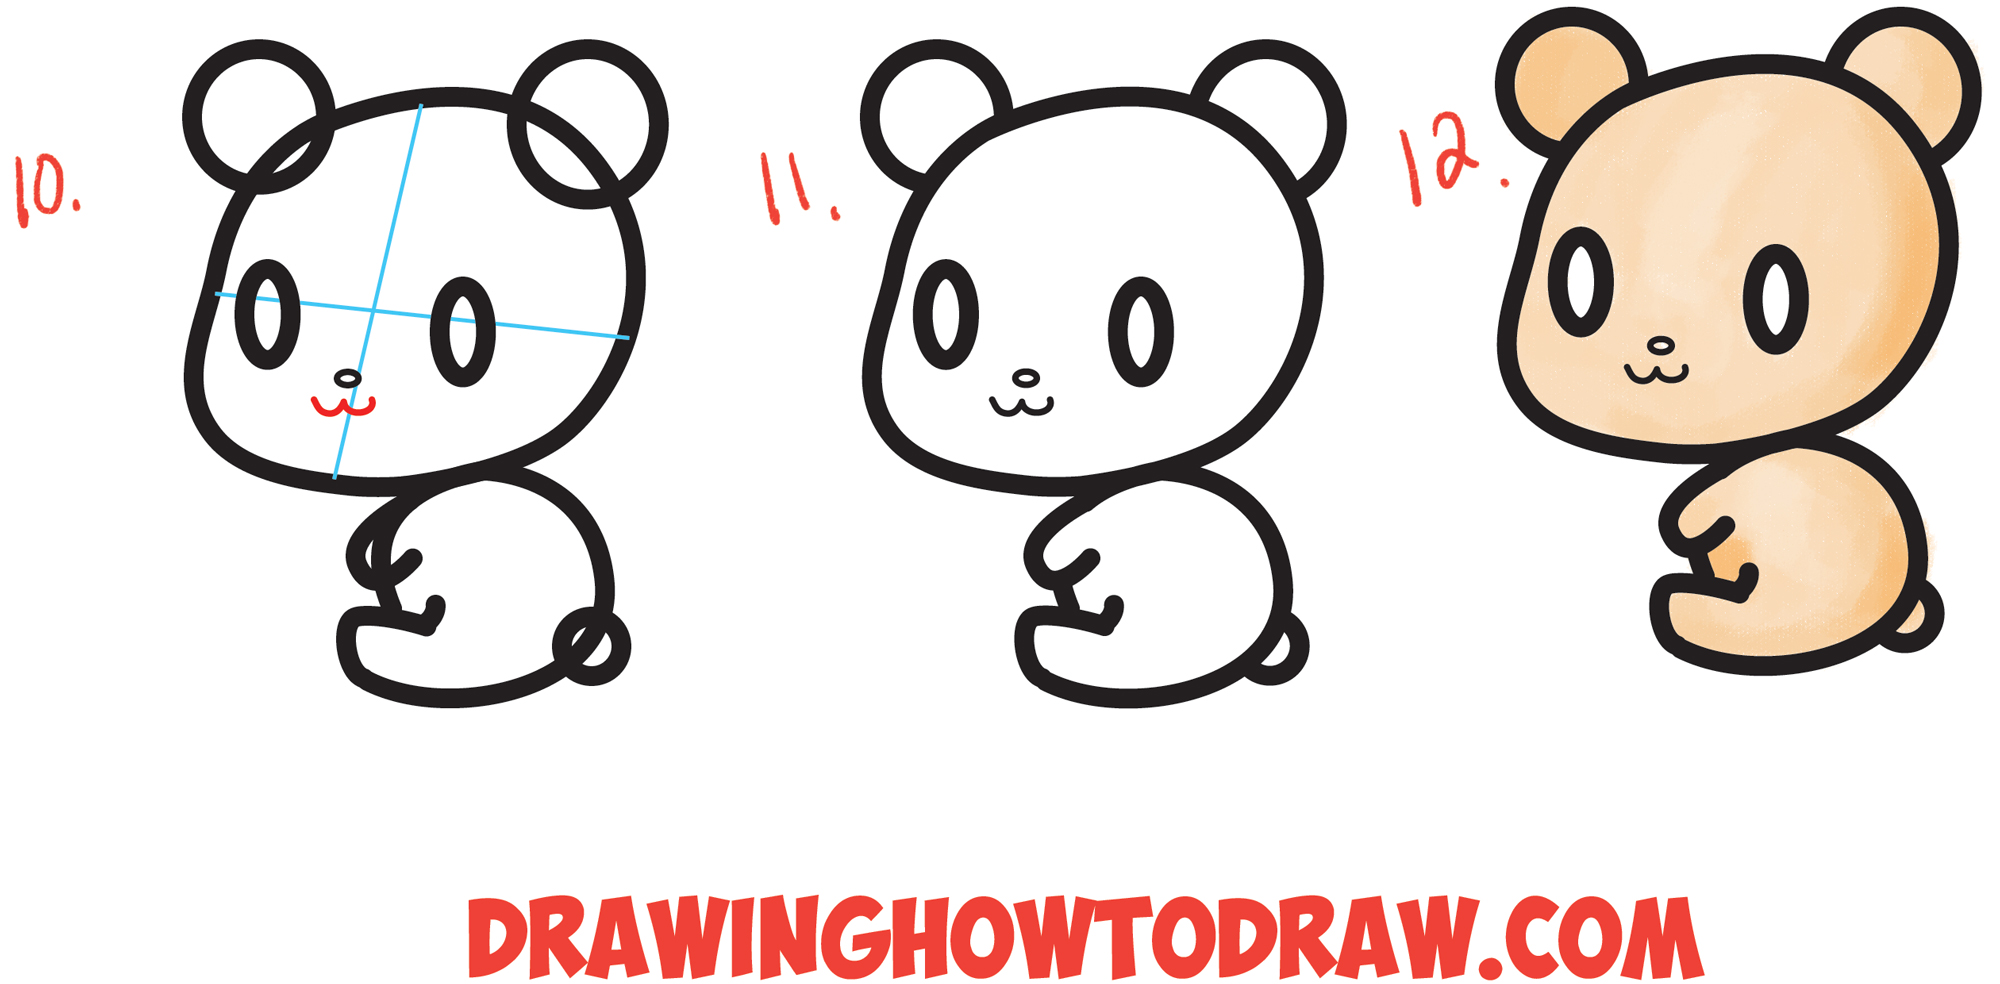 How to Draw a Cute Chibi / Kawaii Cartoon #3 Shape Bear